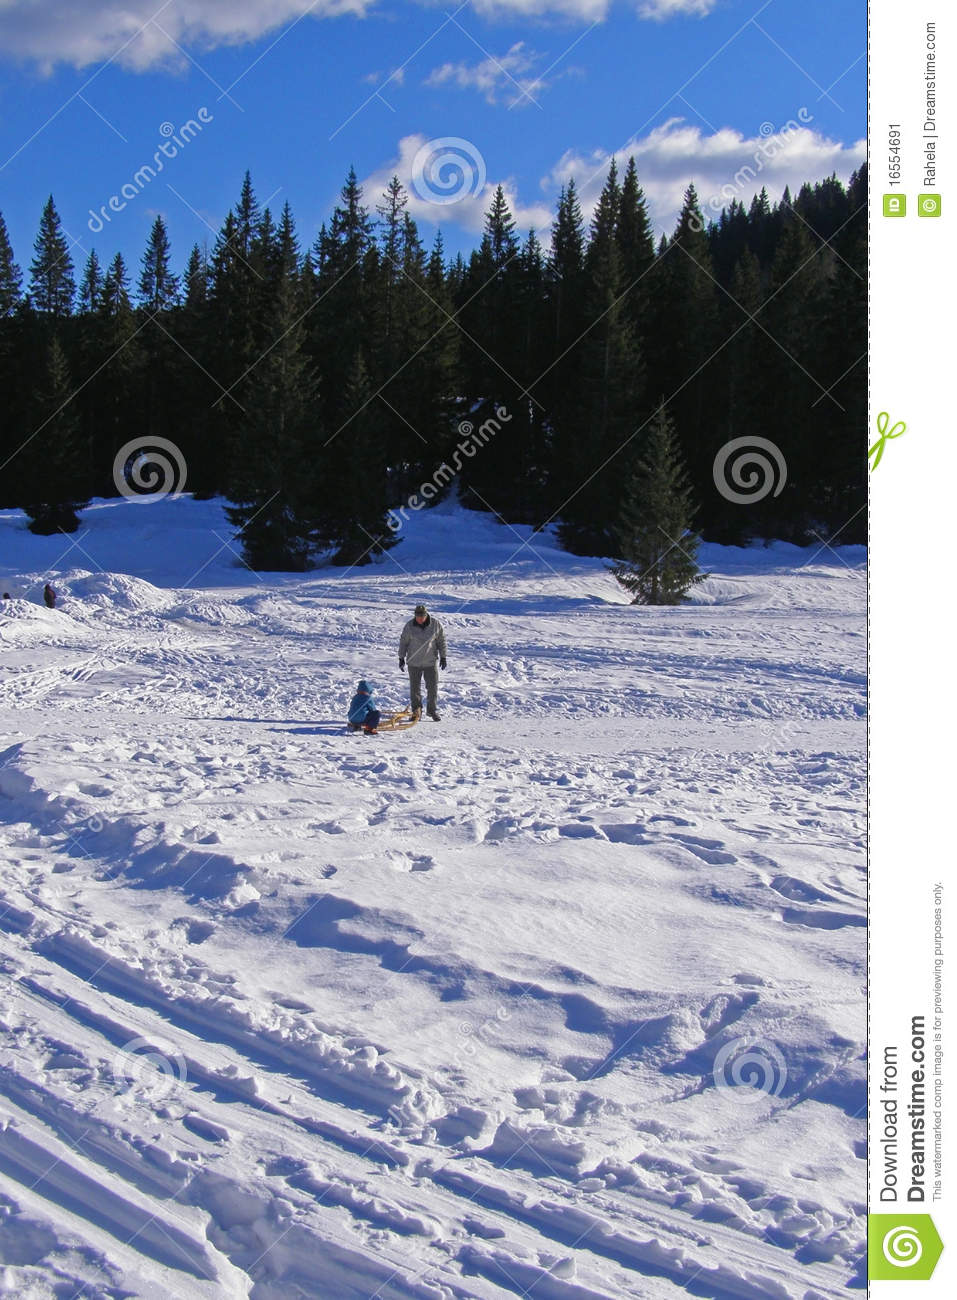 Family 39 s winter vacations stock image image 16554691 for Best family winter vacations